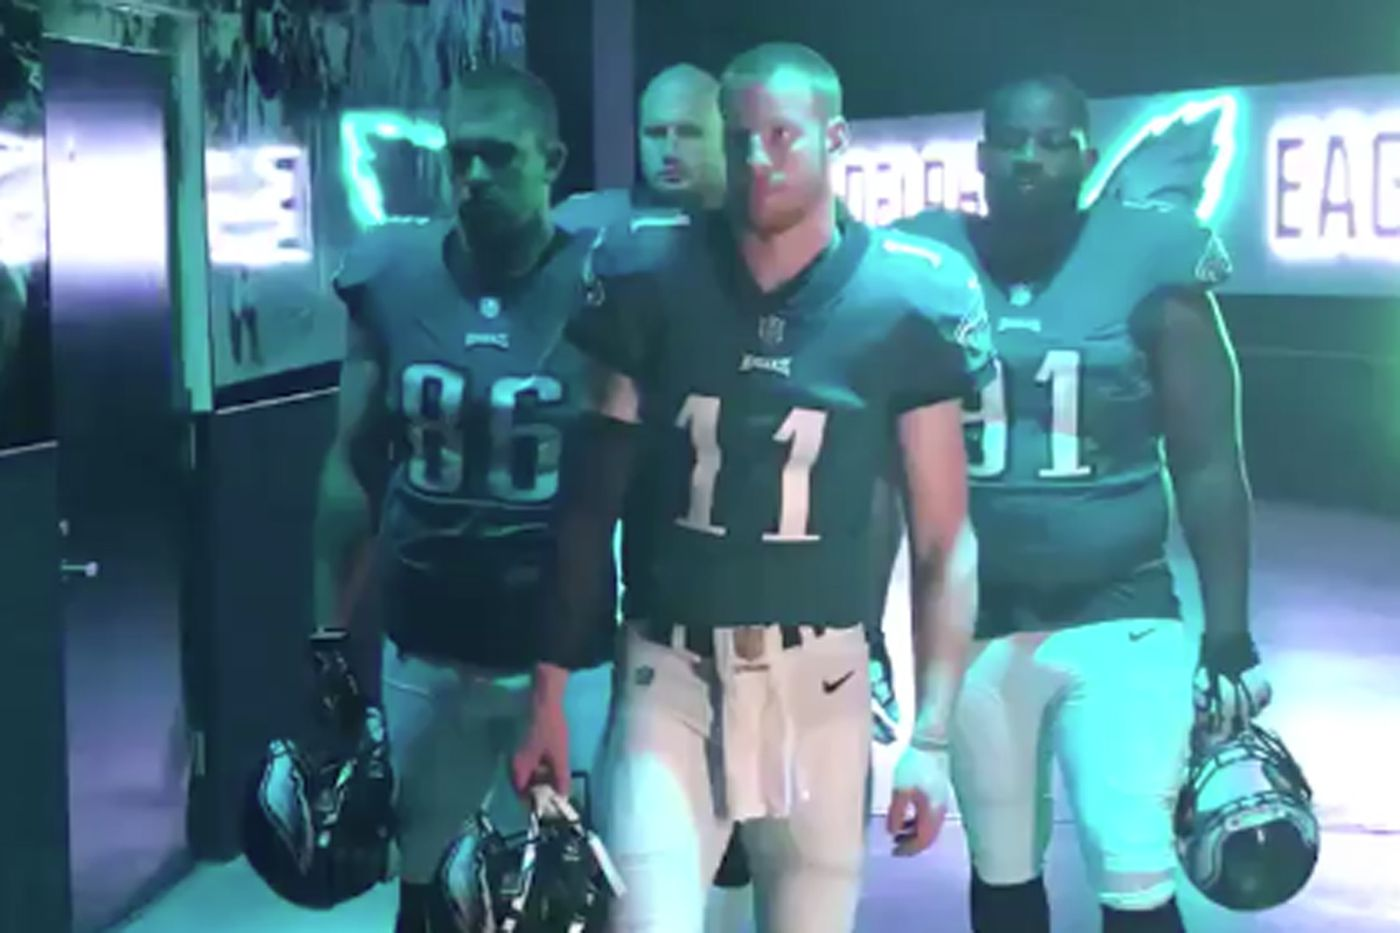 Eagles flood 'Sunday Night Football' opening, Phillies to play on Facebook again